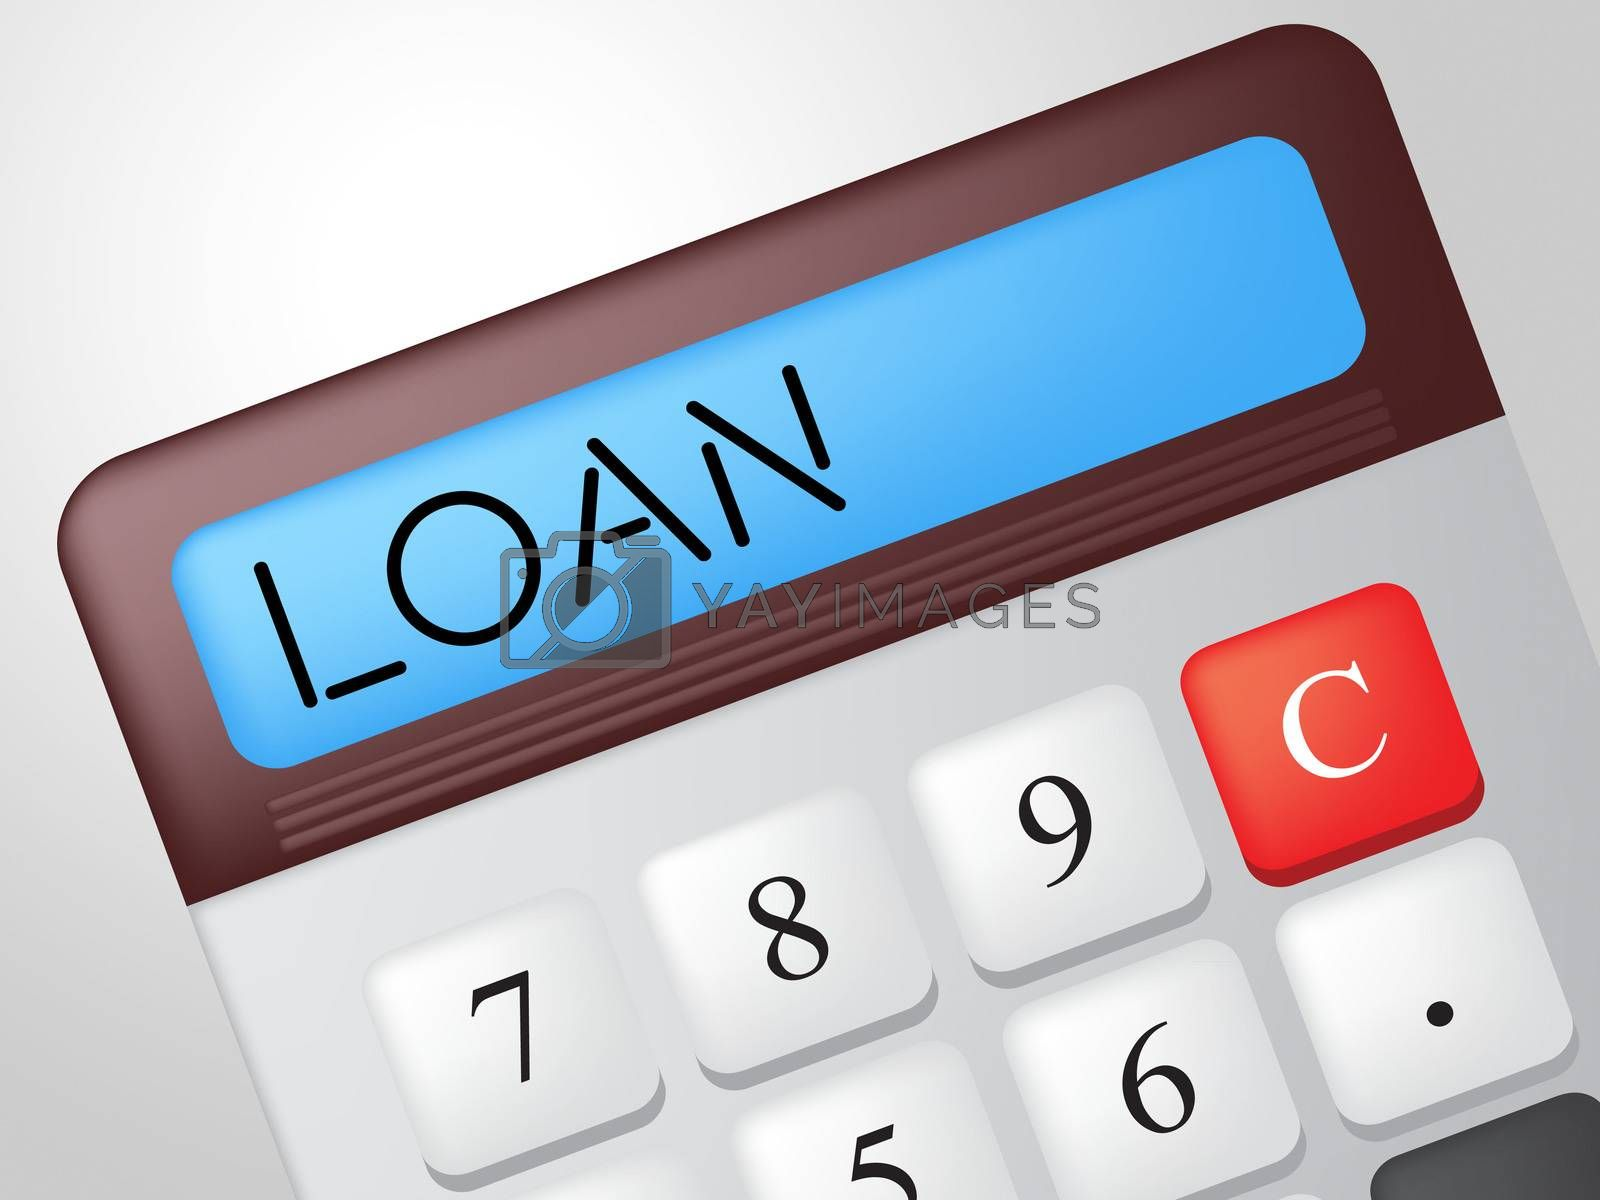 Loan Calculator Means Fund Loans And Lending by stuartmiles